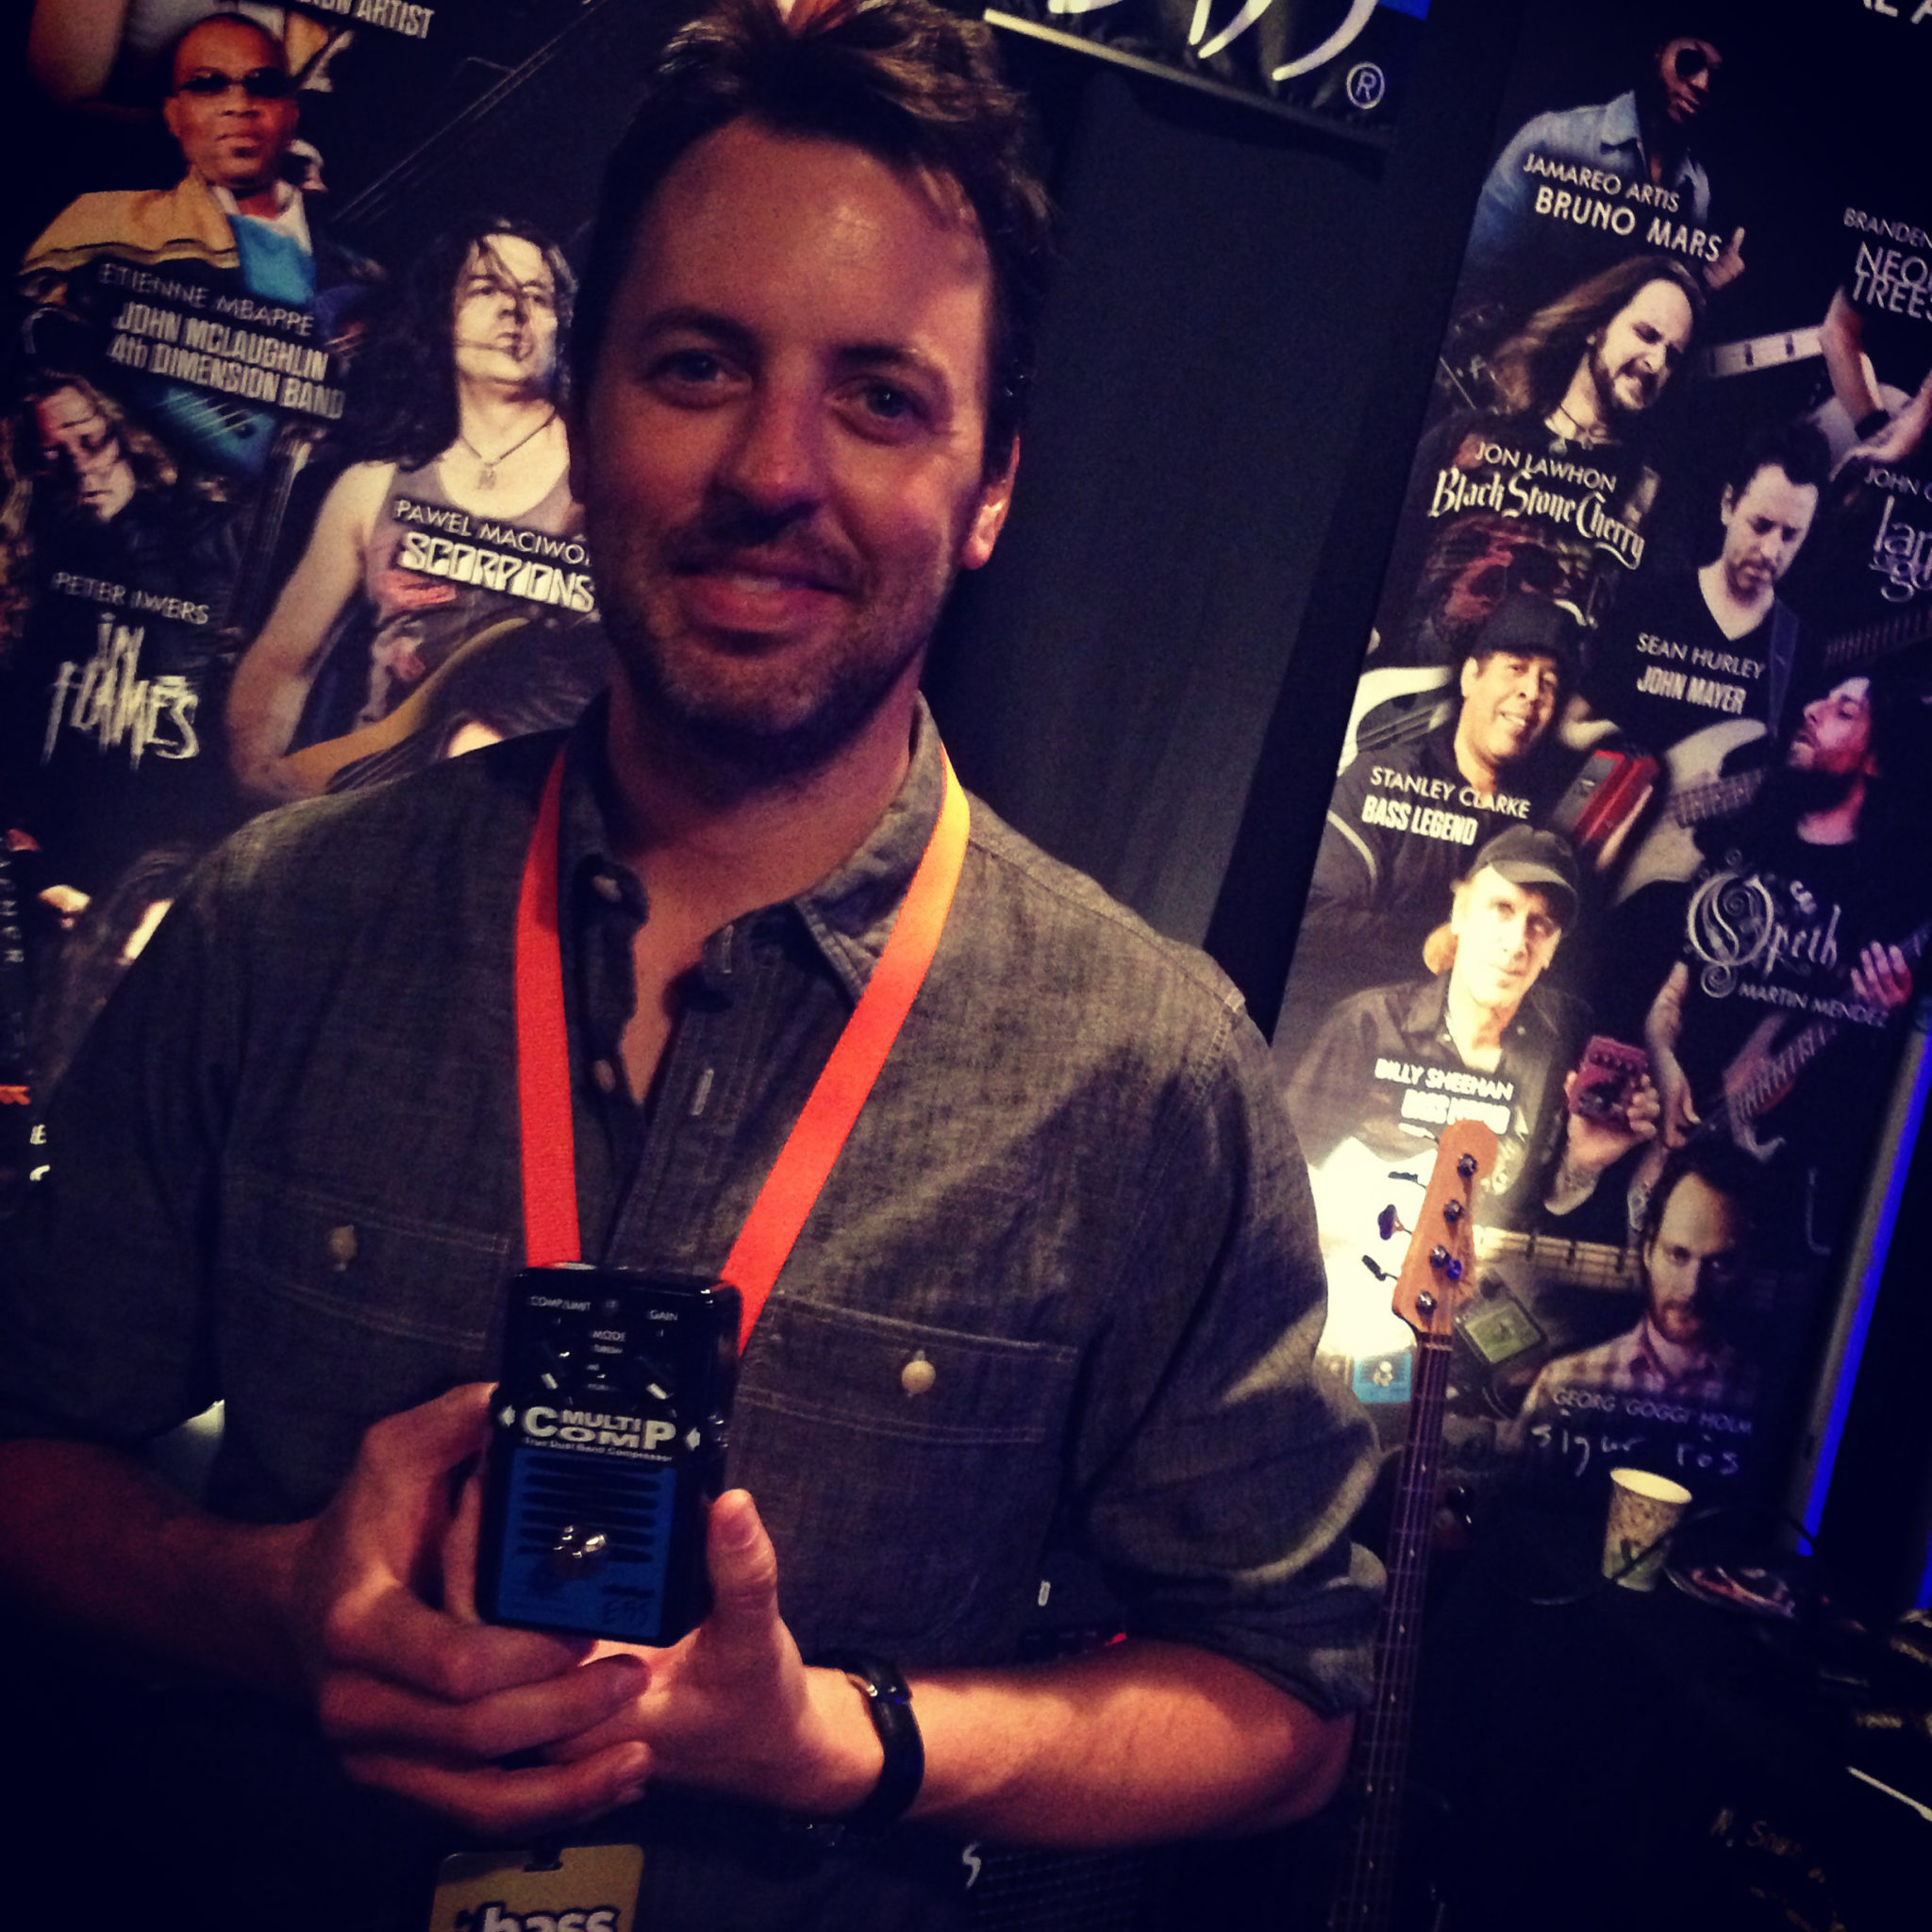 EBS Pedal Artist Sean Hurley got the new EBS MultiComp Studio Edition.